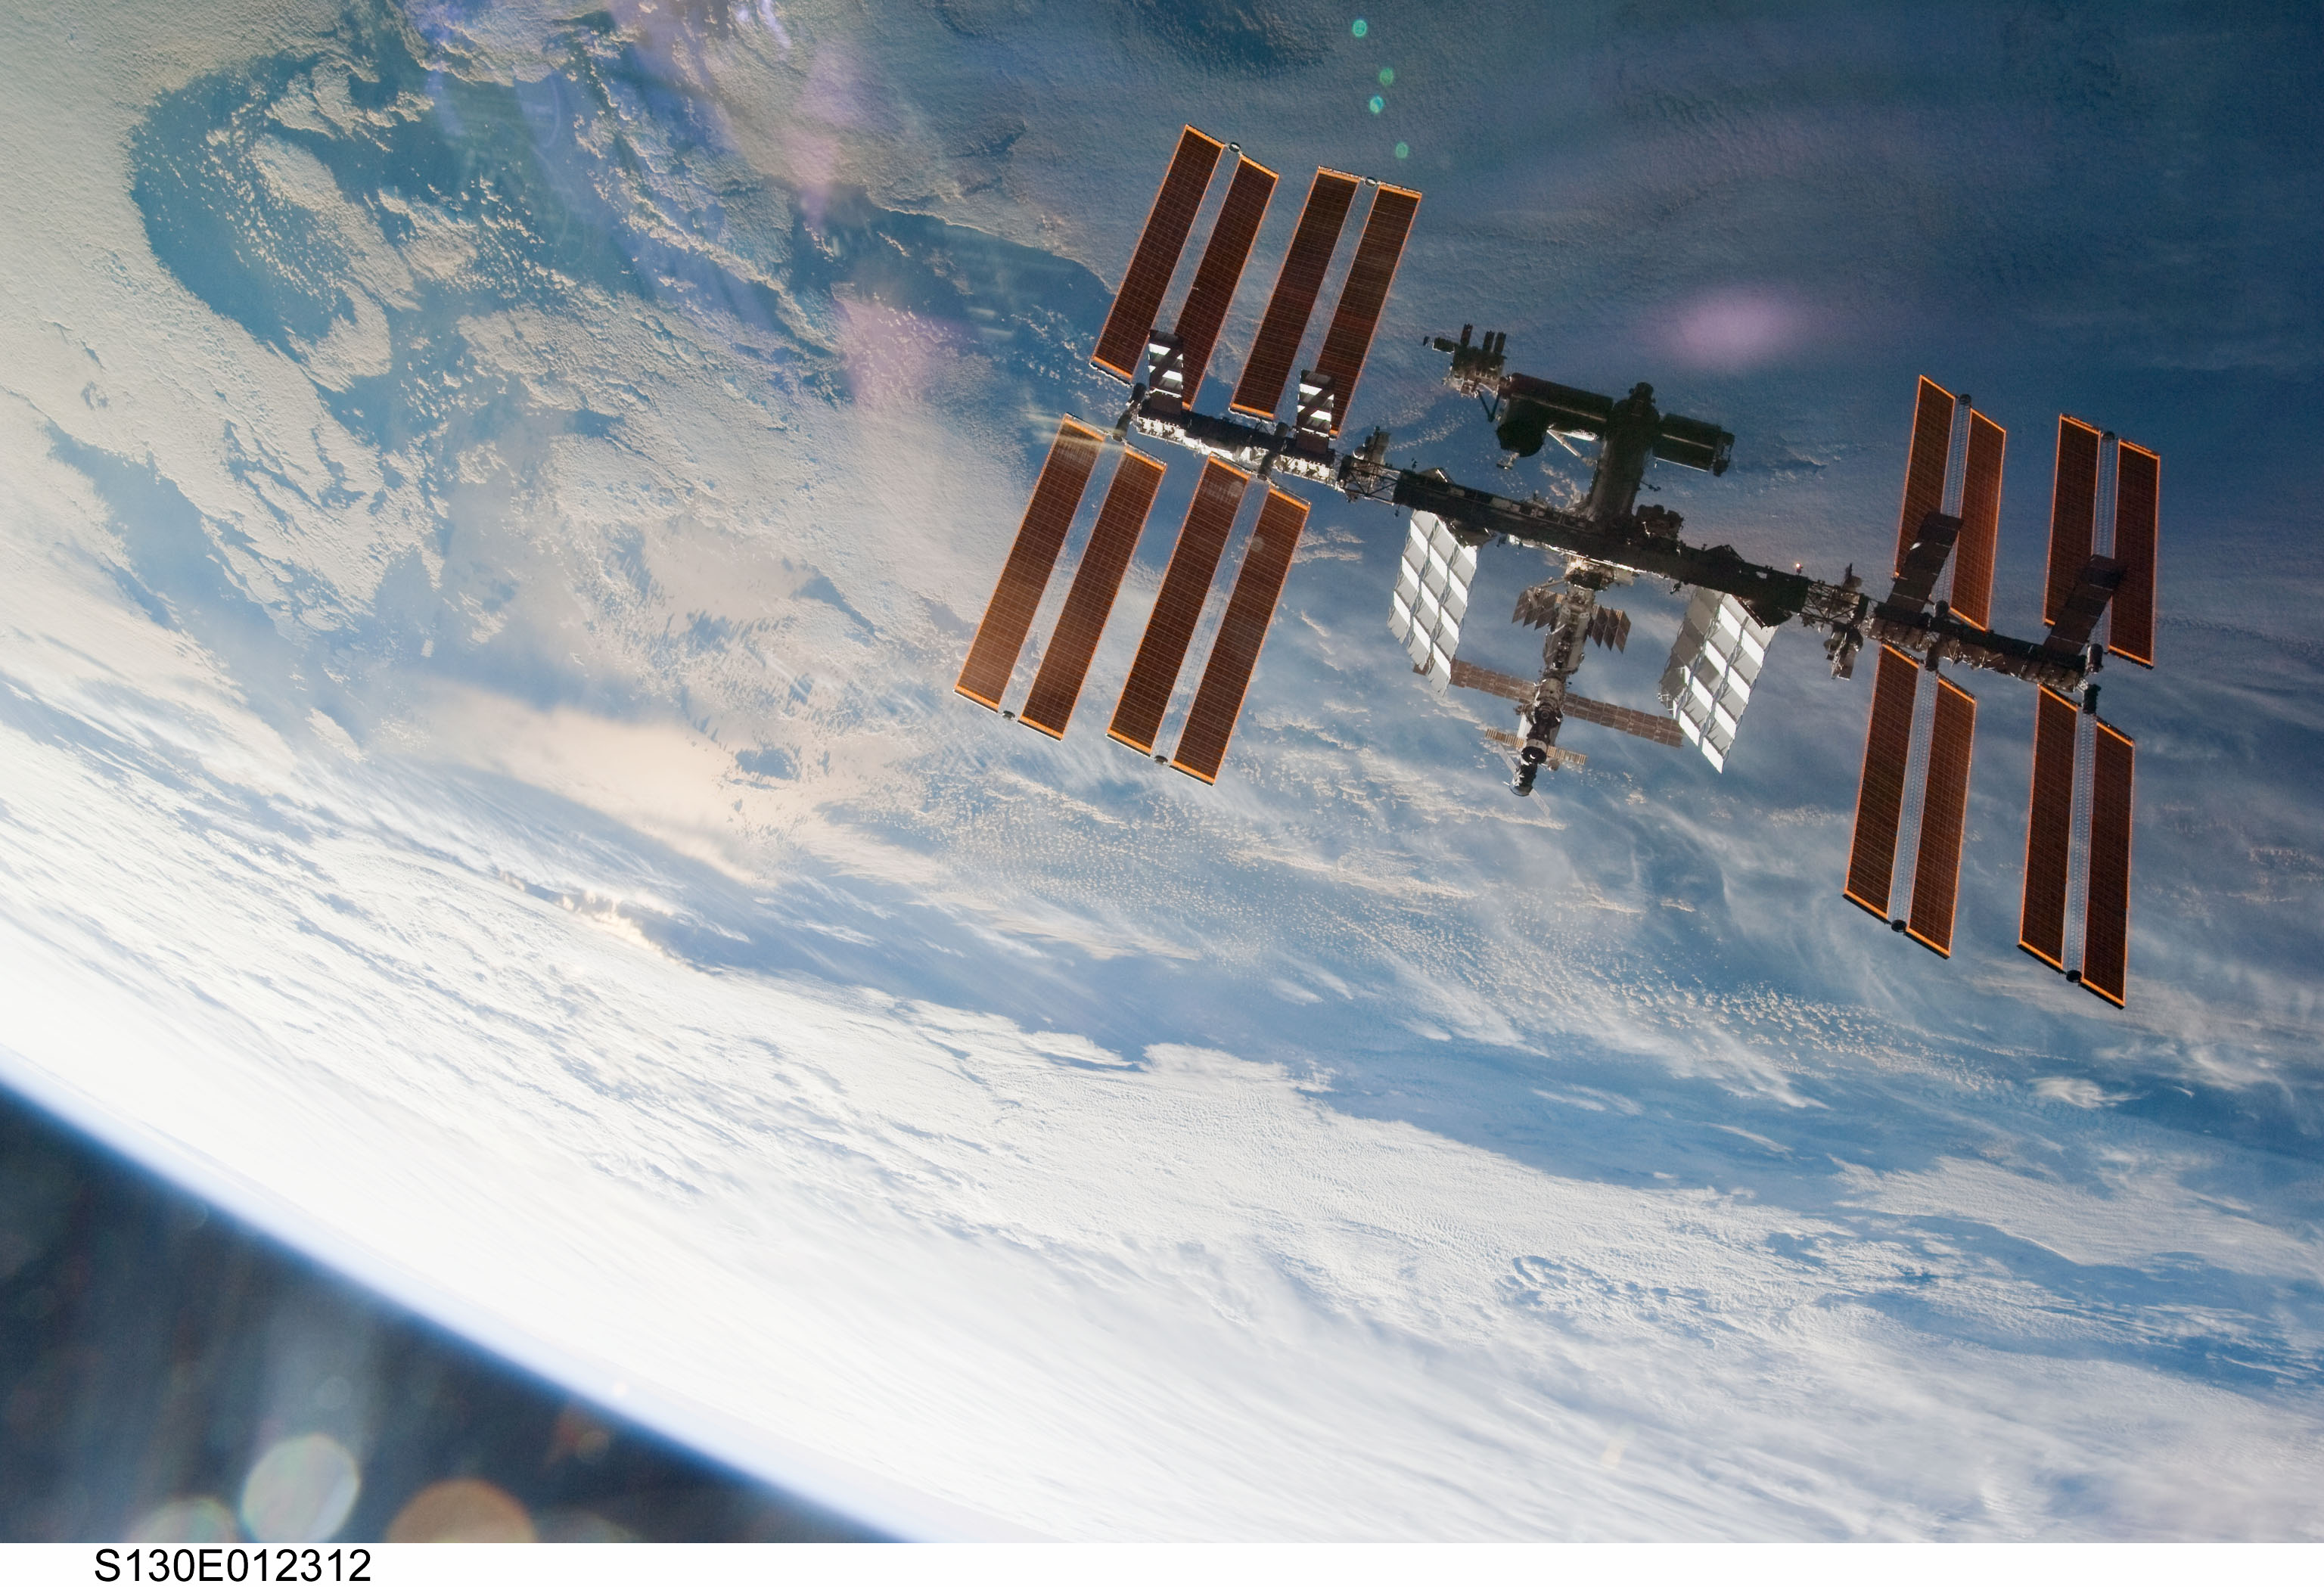 photos of the space station seen from the ground as - photo #4